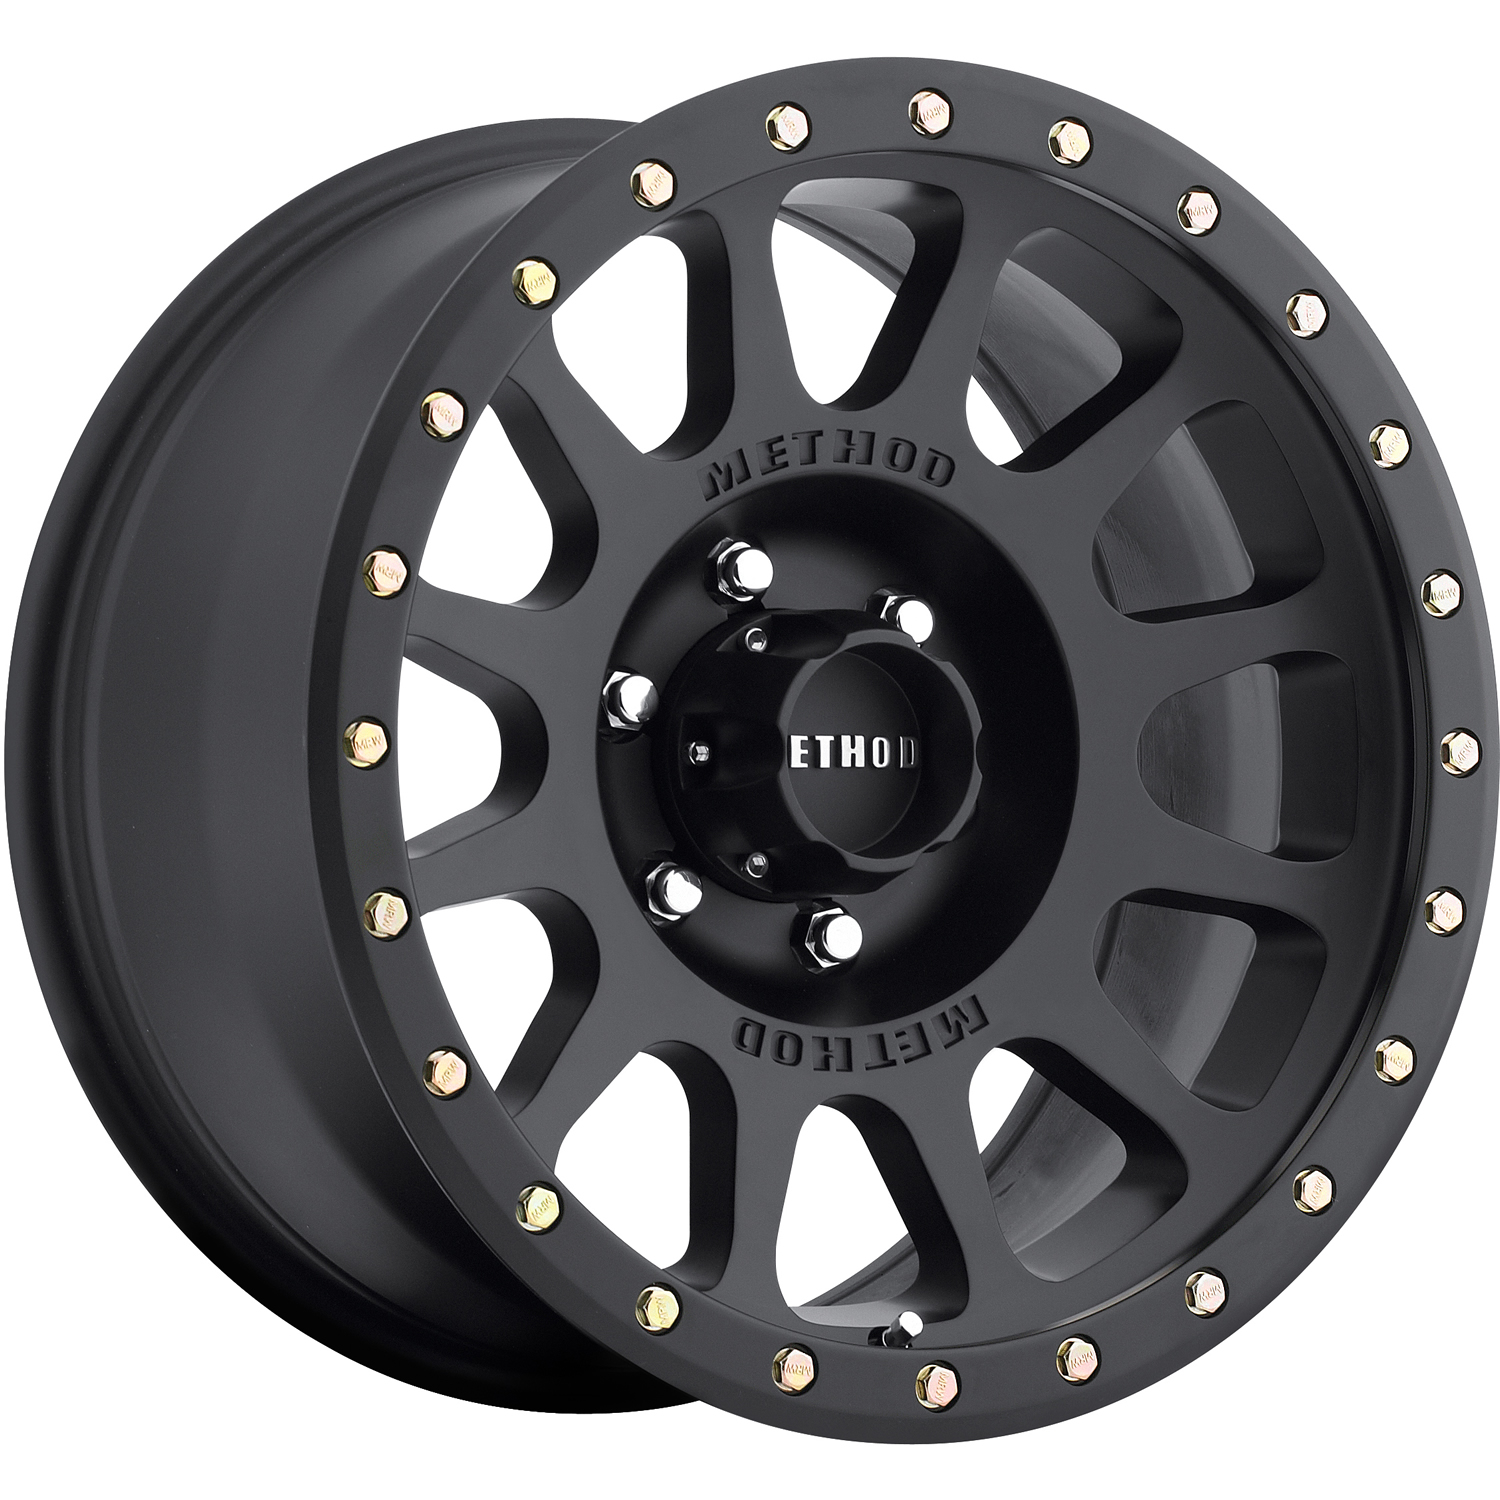 Method NV Matte Black with Simulated Bead Lock 18x9 -12